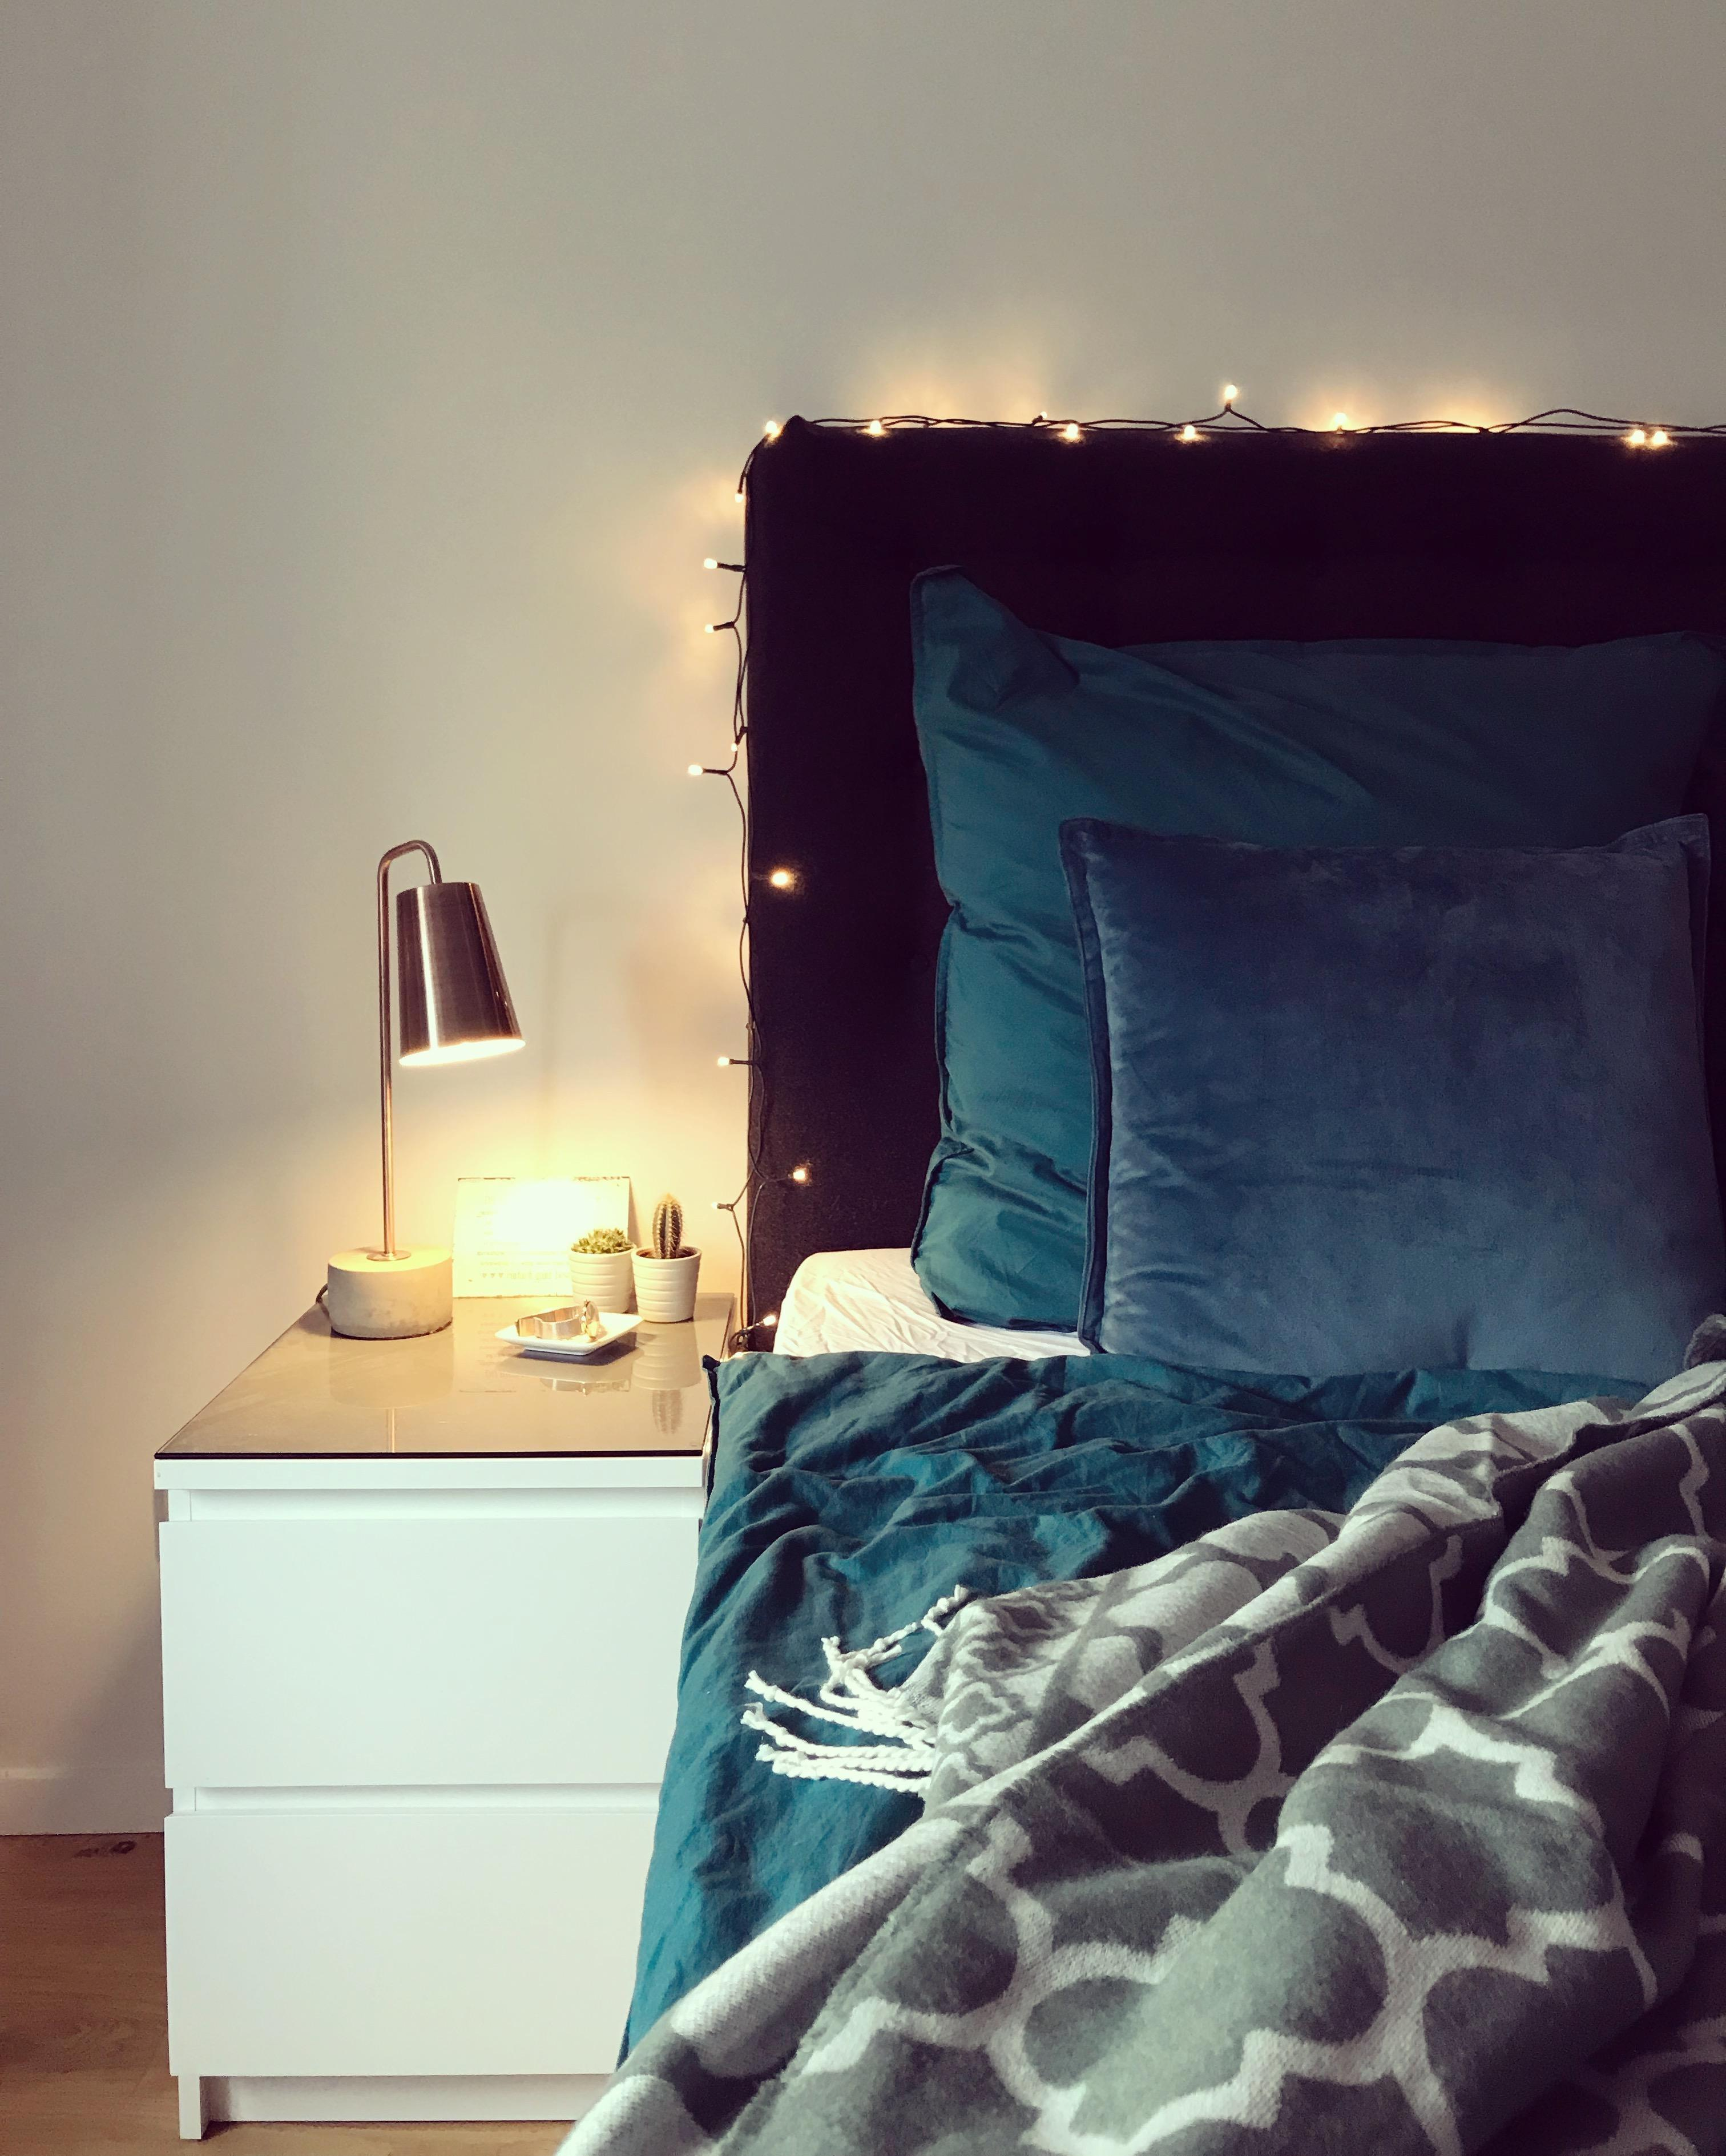 cozy evenings ✨ #light #cozy #bedroom #home #hygge